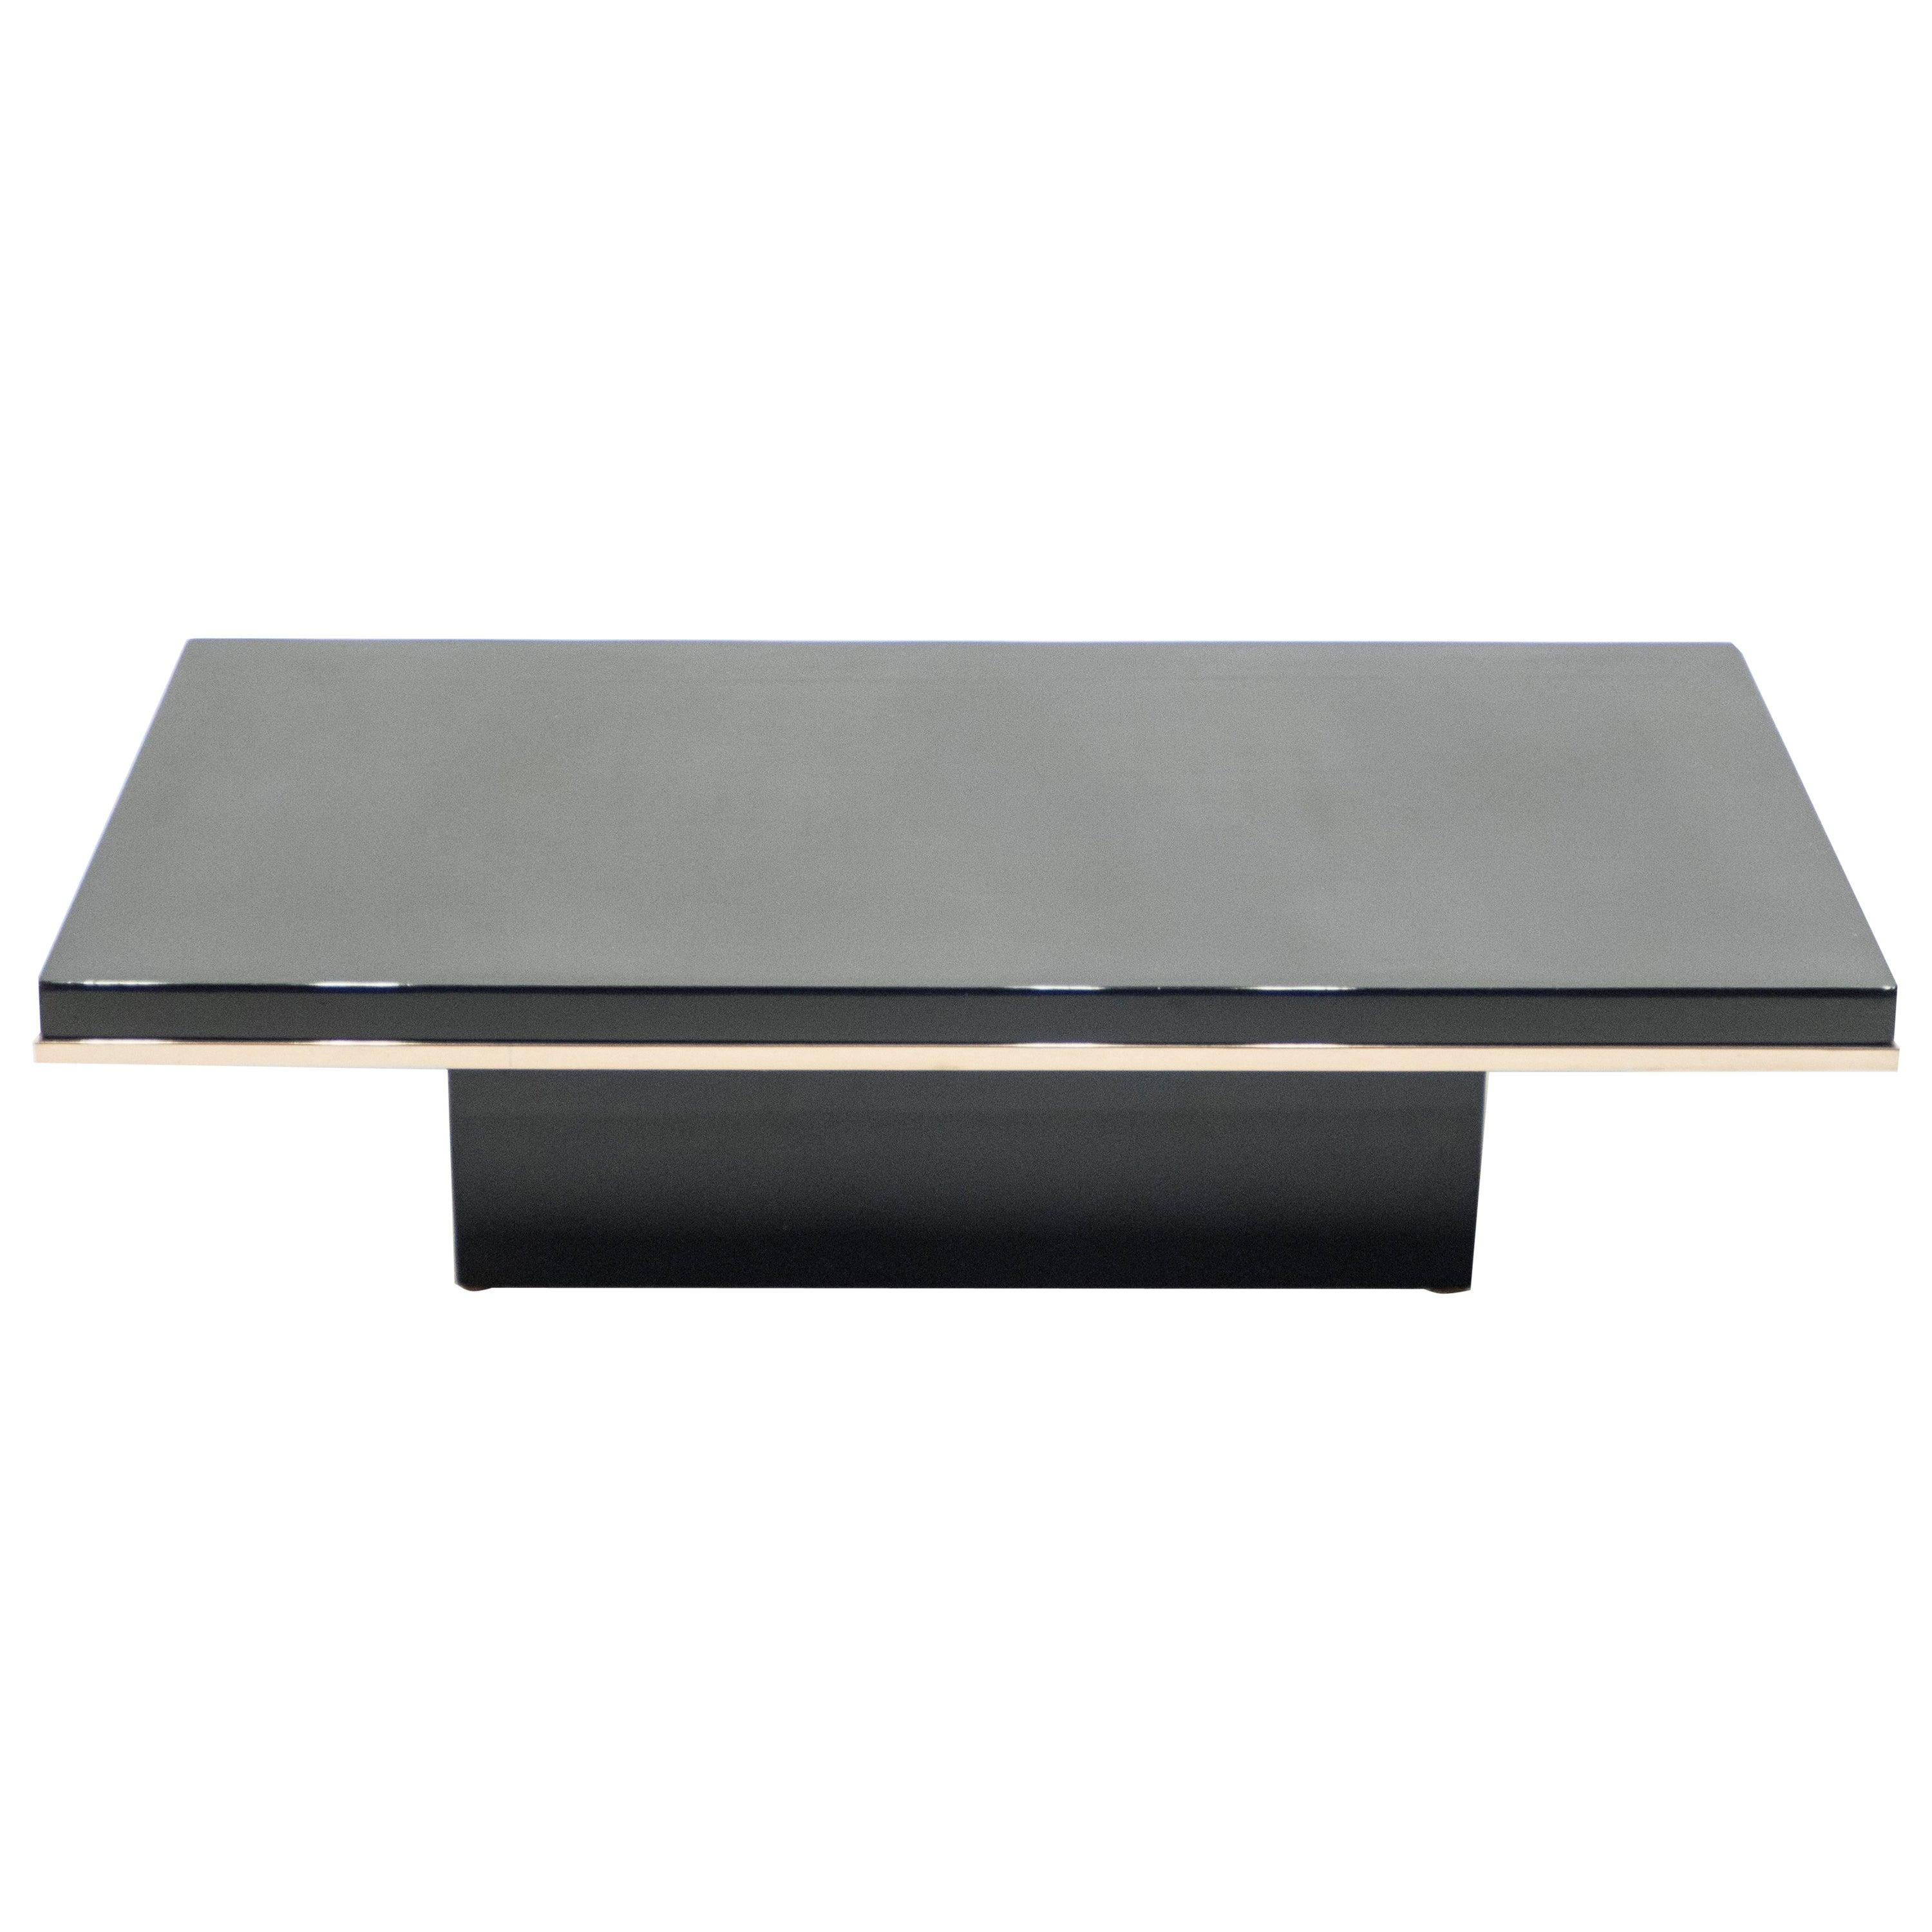 J.C. Mahey Black Lacquer and Brass Coffee Table, 1970s